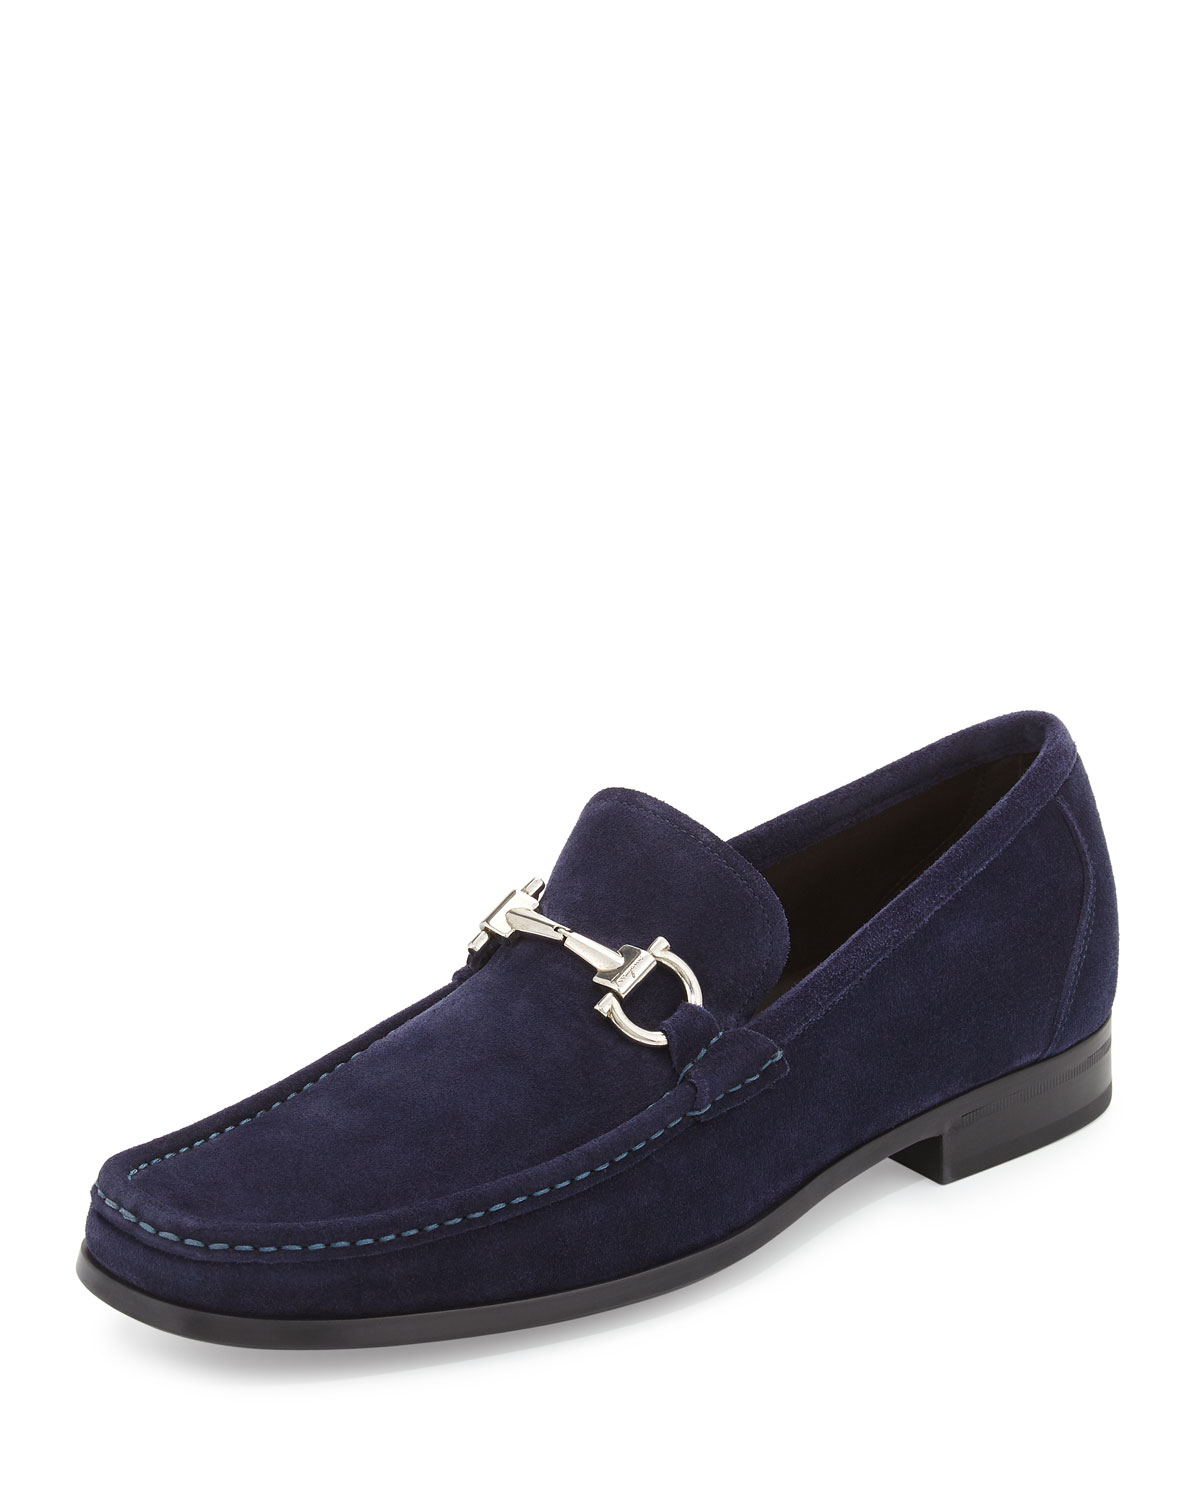 Rubber Rings For Men >> Lyst - Ferragamo Magnifico Suede Gancini Loafer With Rubber Sole in Blue for Men